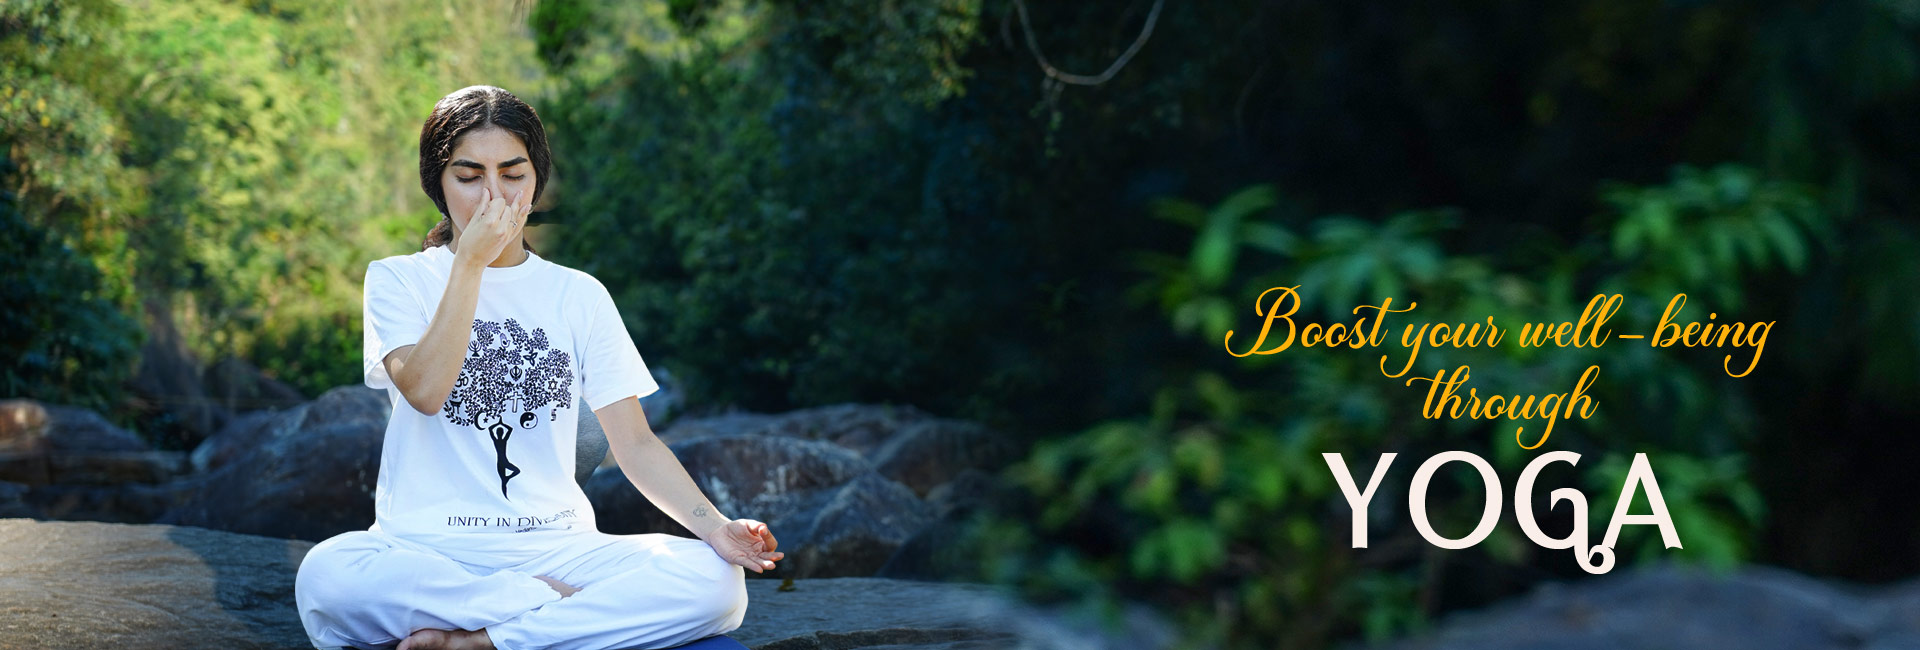 Boost your well-being through Yoga